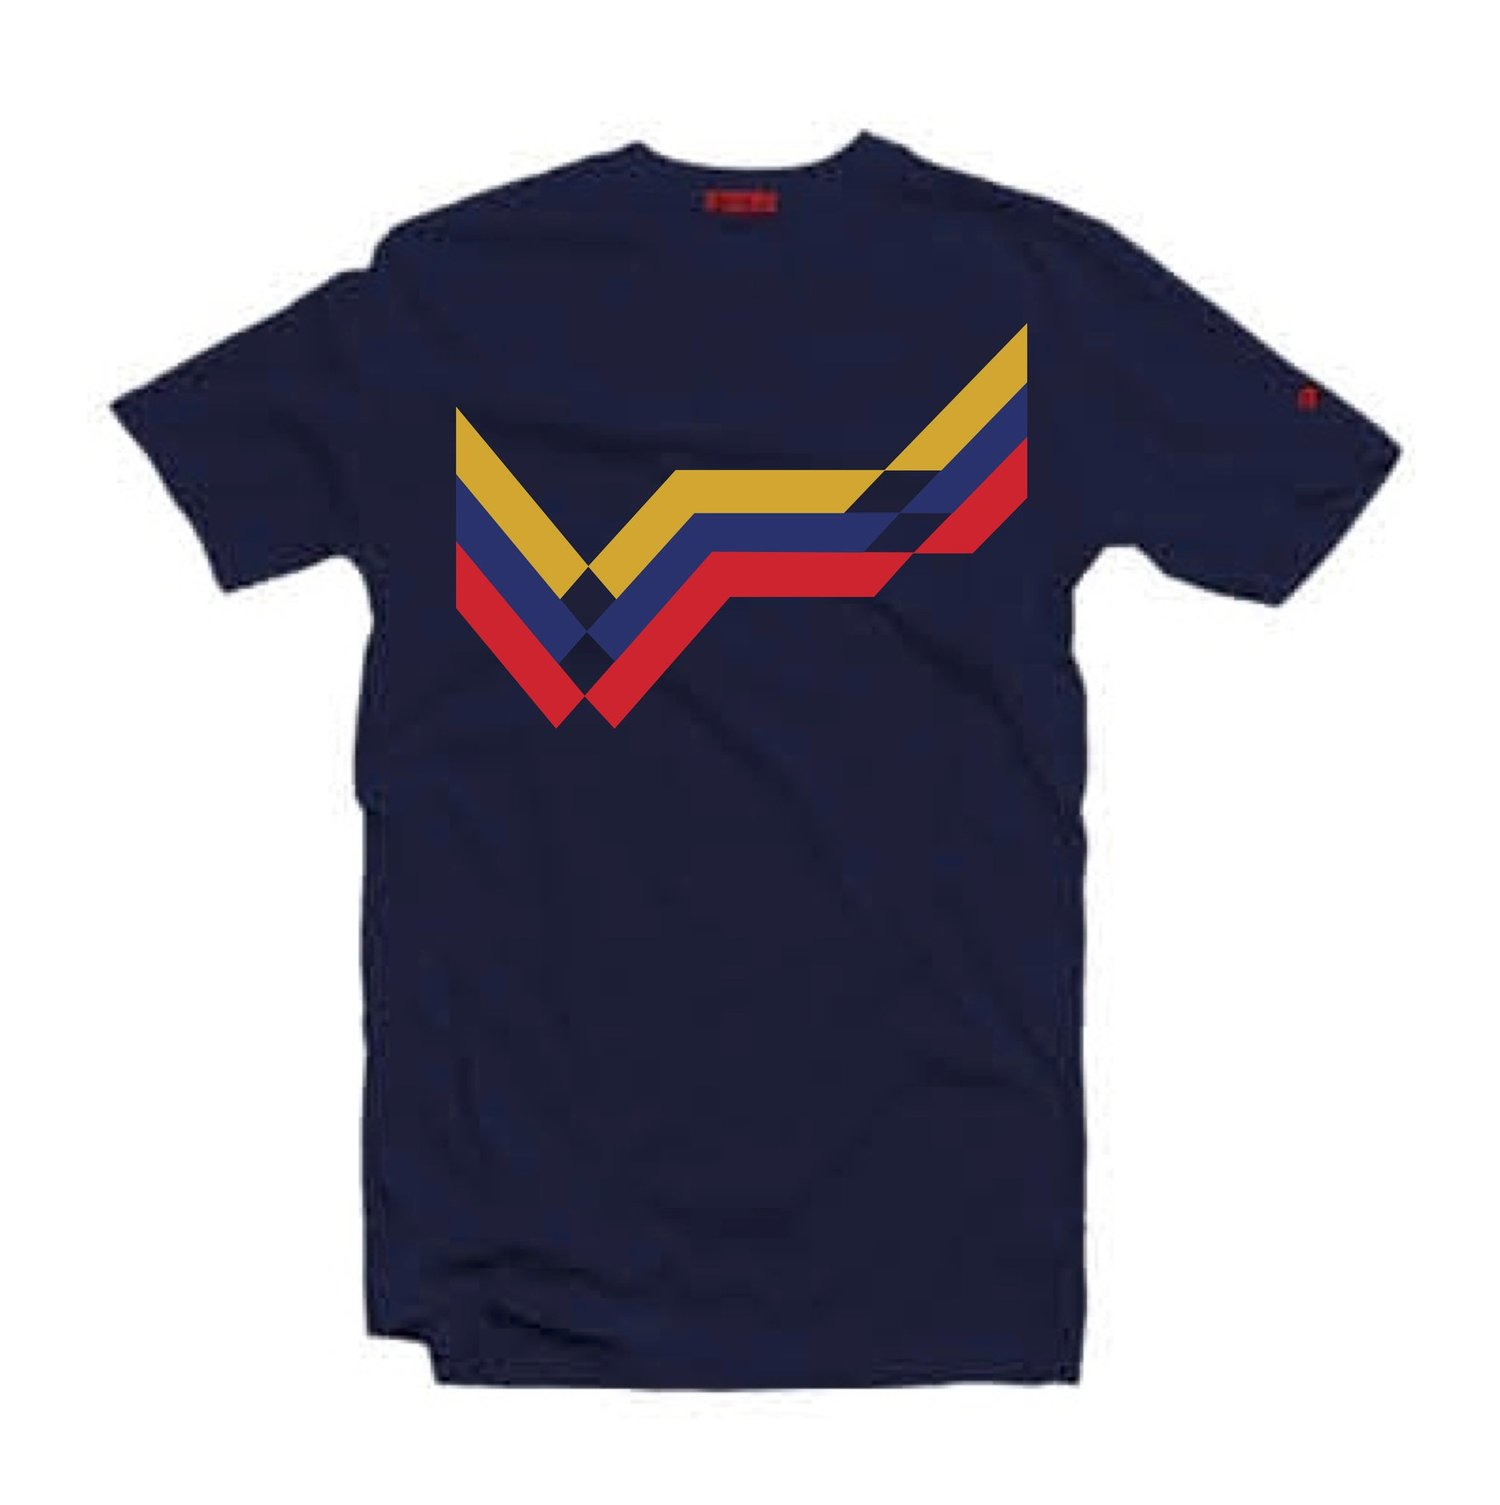 25463df1 '100% Colombian' T-Shirt Navy Blue — 80s Casuals